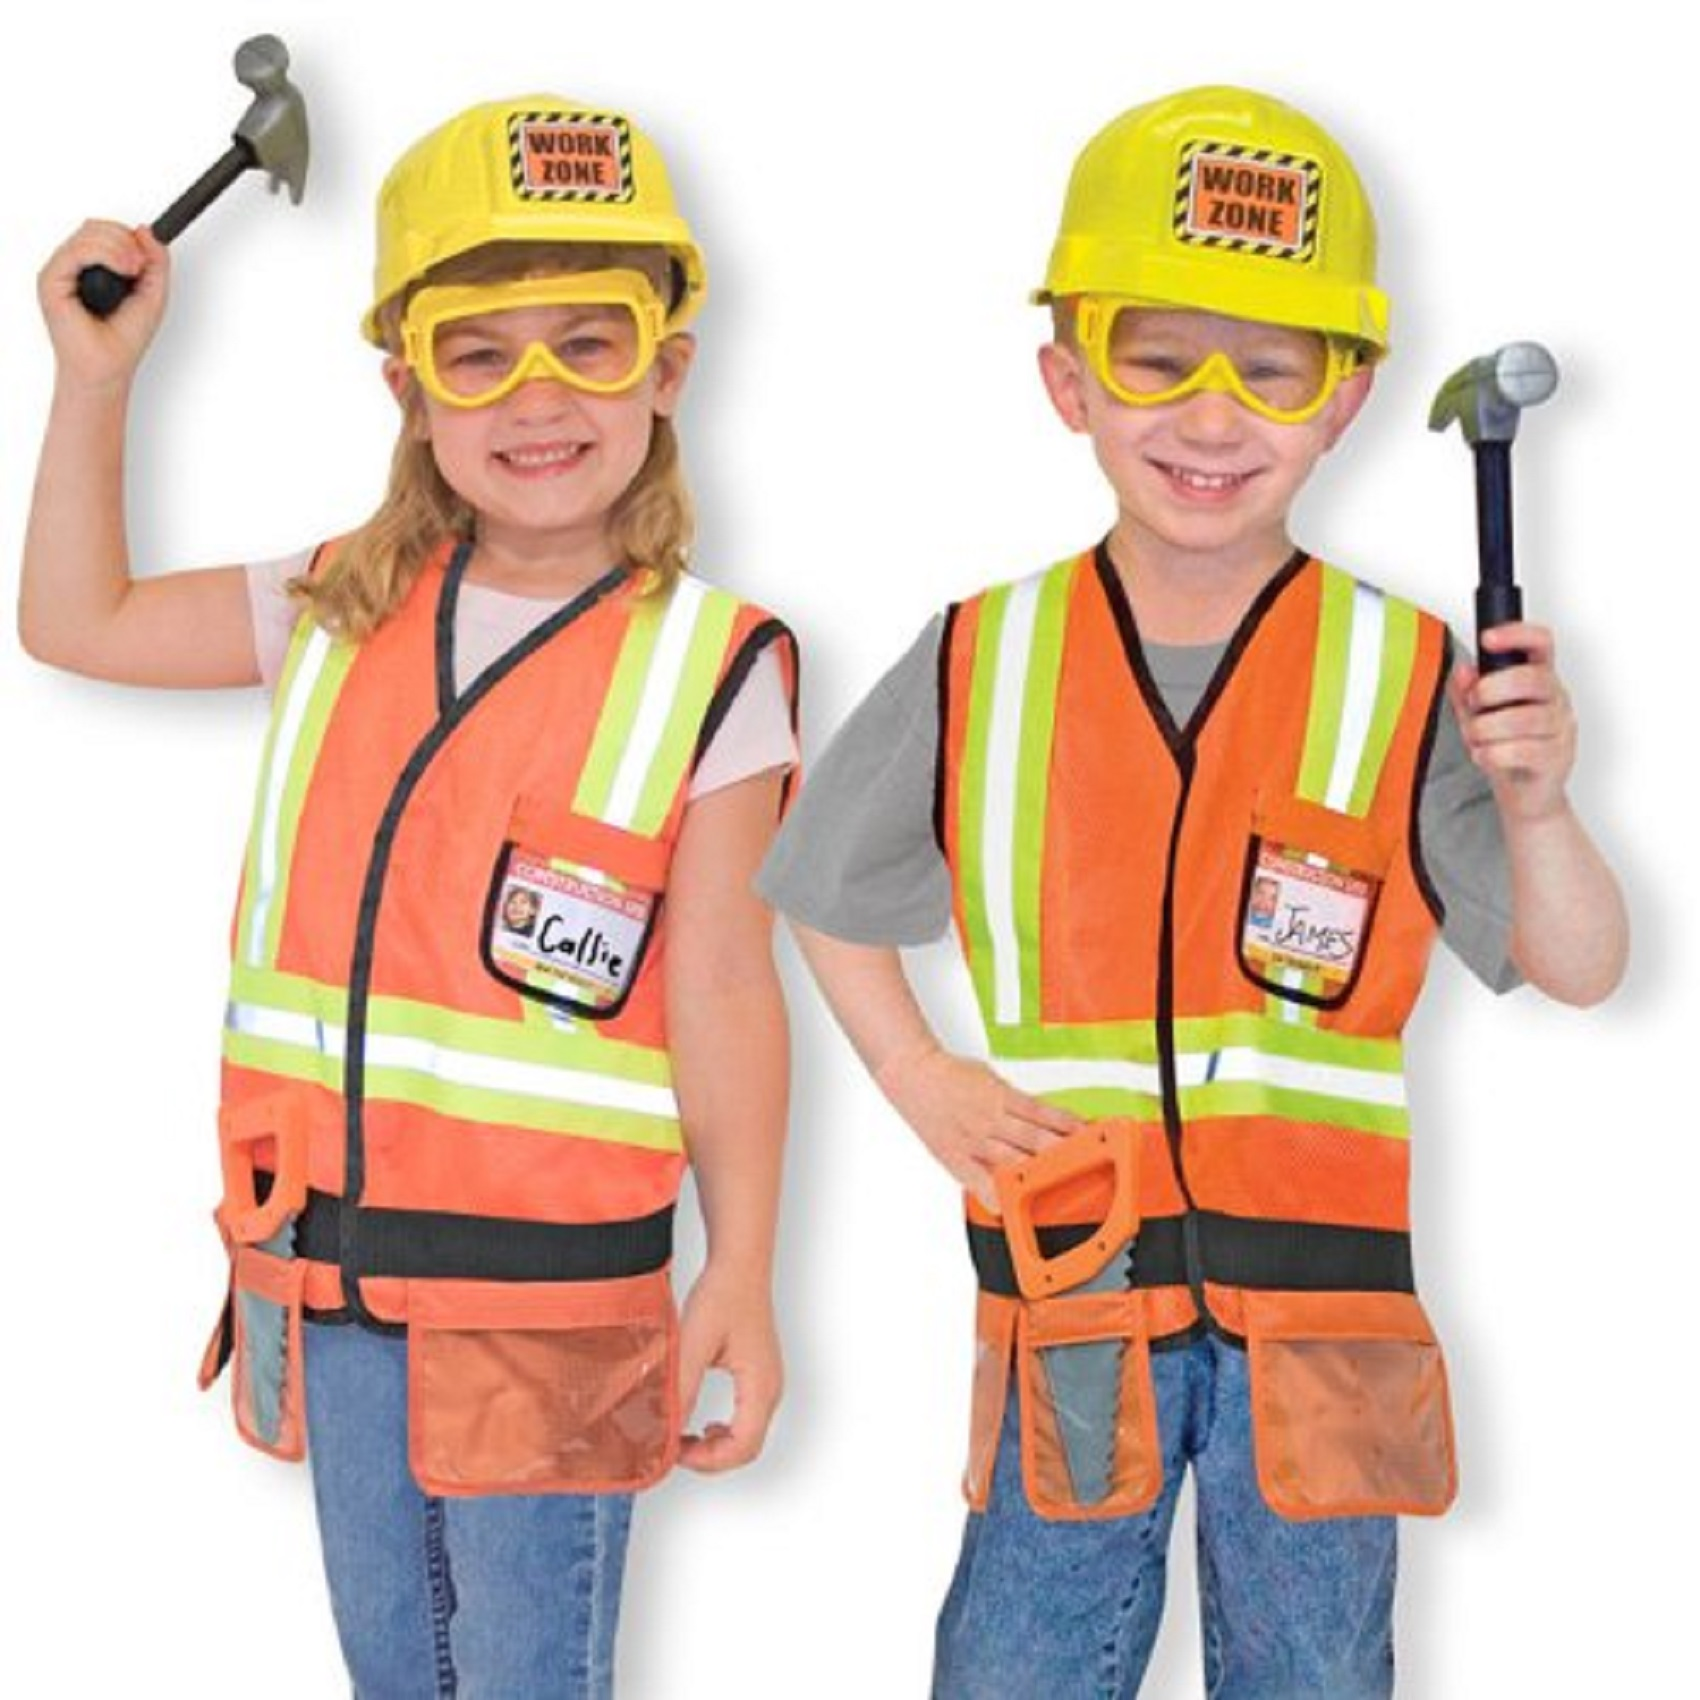 AllwaySmart Kids Cute neon pink kids safety vest reflective high visibility and pretend play construction party costume for small girls.